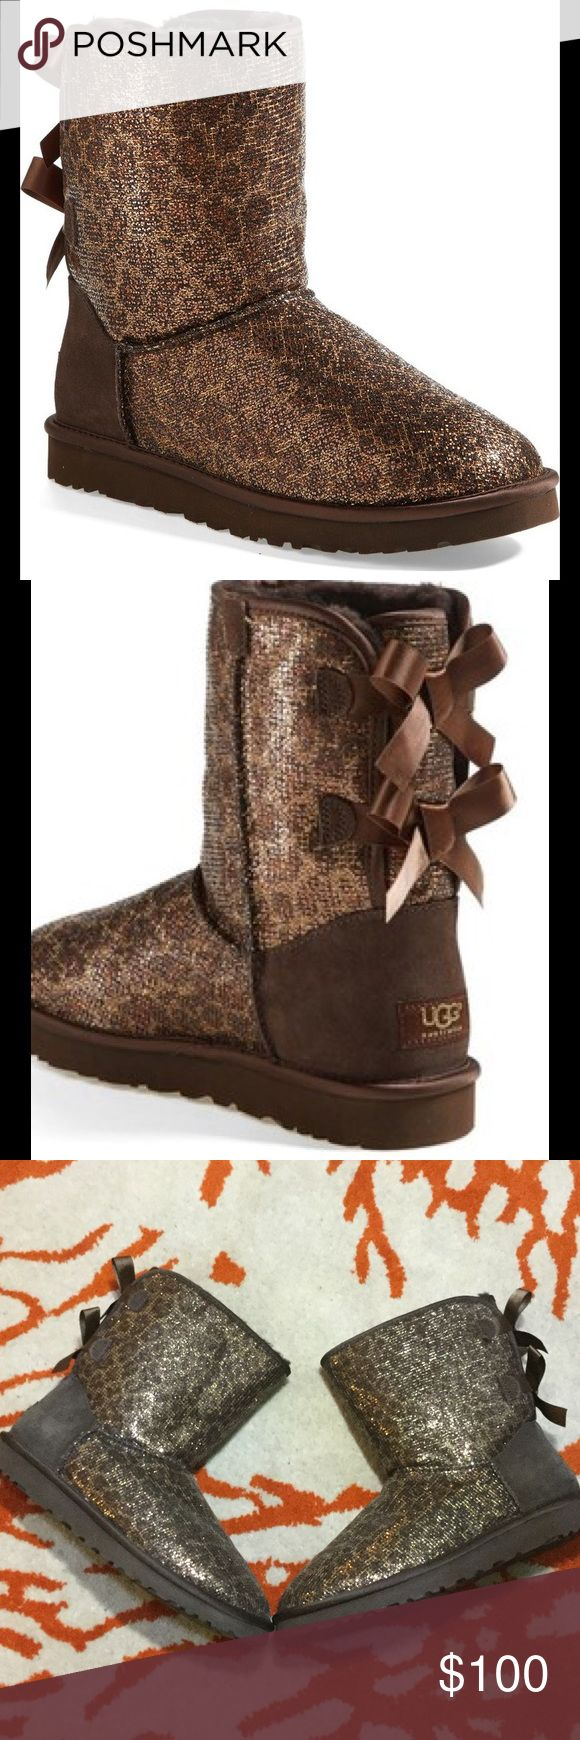 UGG Bailey Bow brown glitter boots UGG Bailey Bow brown leopard glitter boots.  Worn once.  Size 8.  Perfect condition. UGG Shoes Winter & Rain Boots